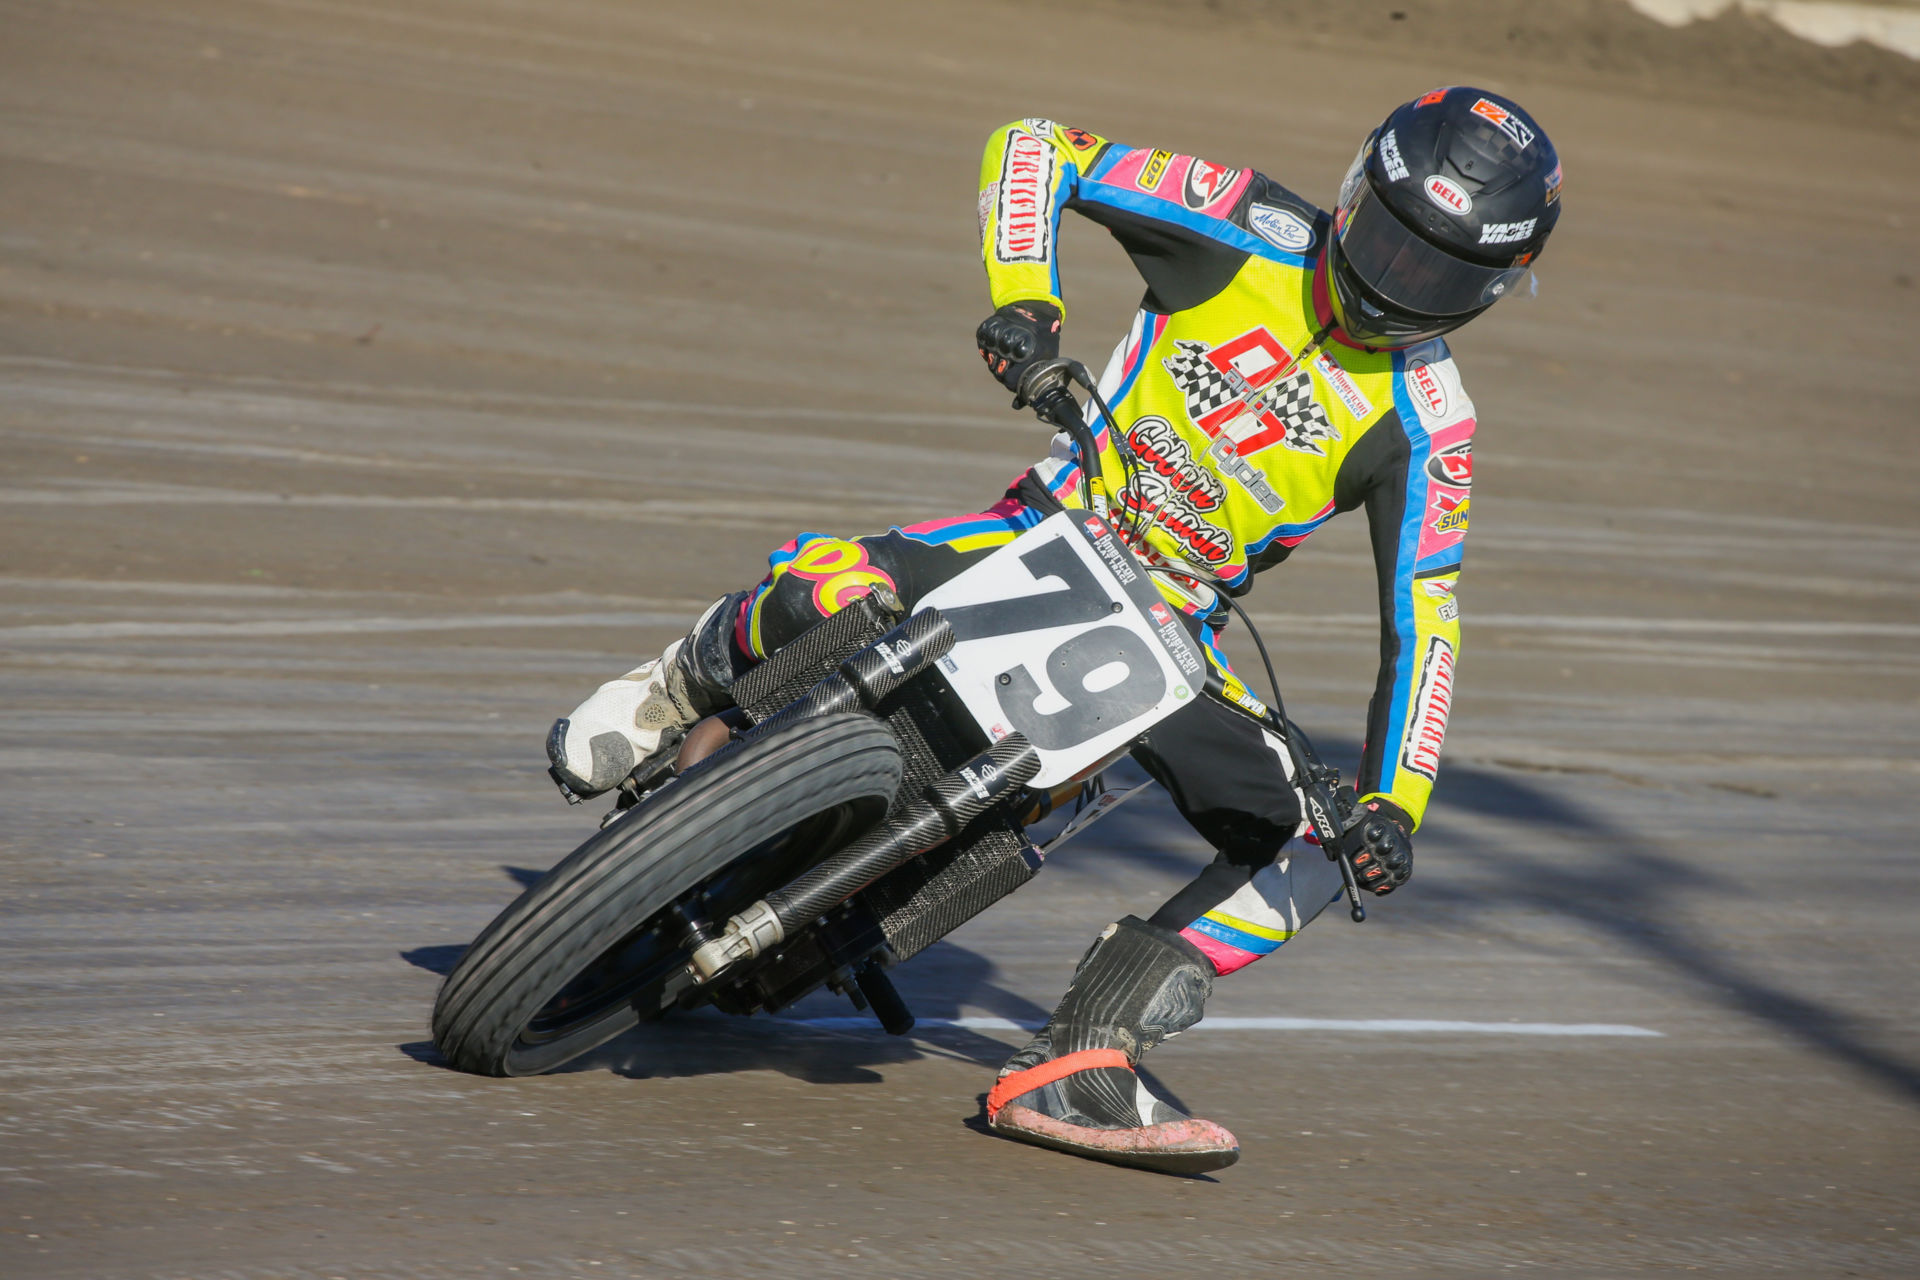 Dalton Gauthier (79), as seen at a Dunlop tire test in December 2020. Photo by Scott Hunter, courtesy AFT.